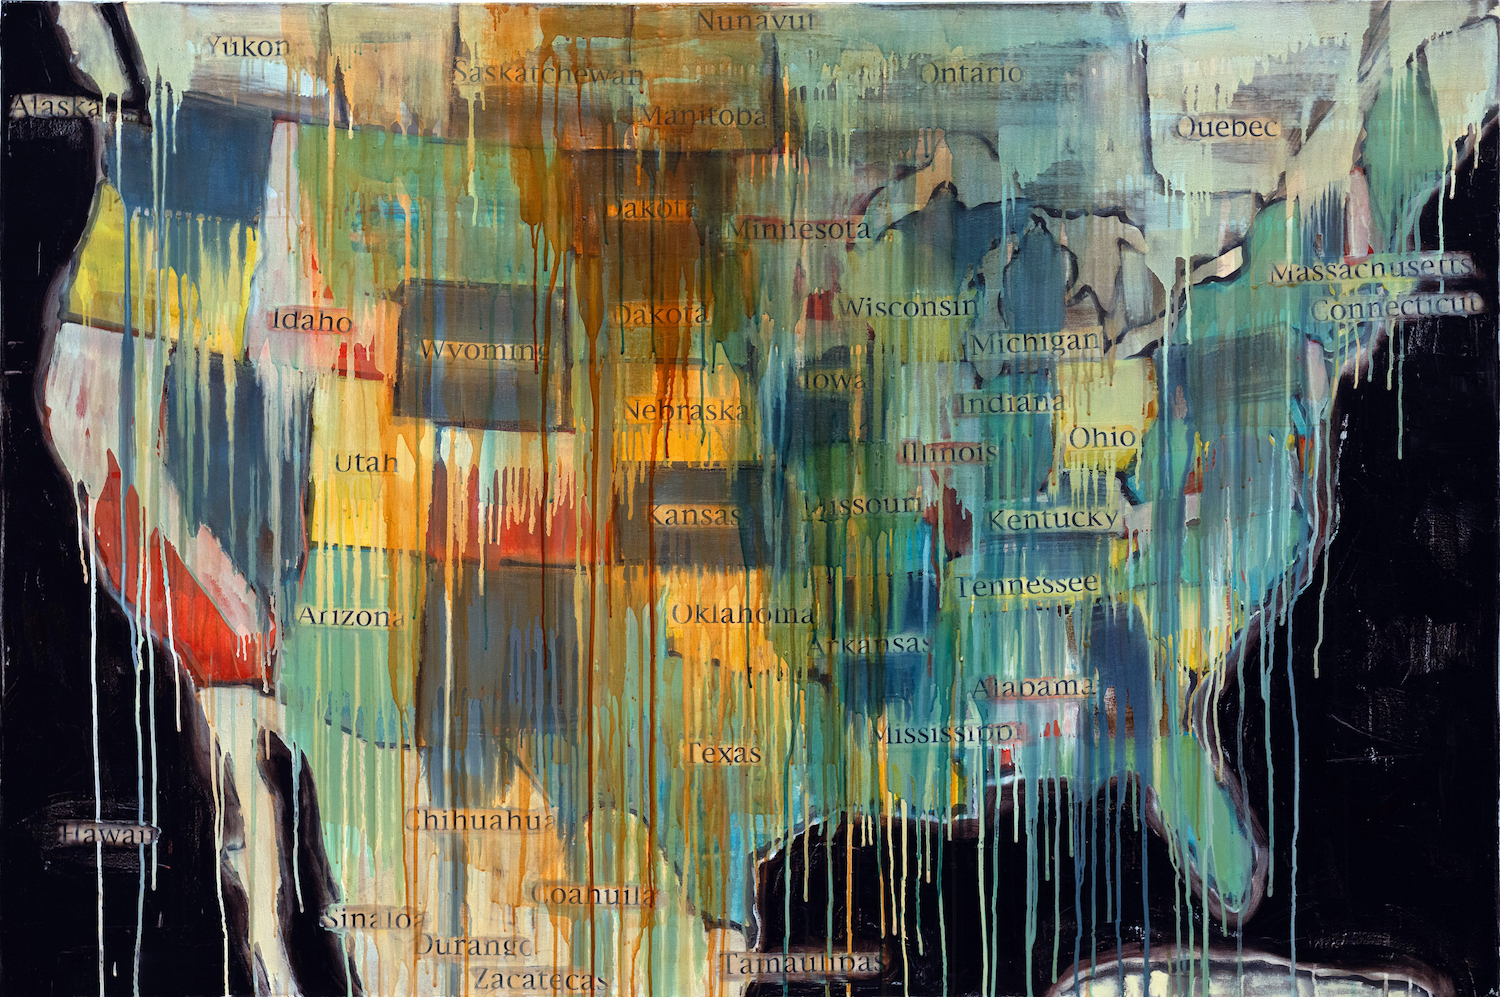 Jaune Quick-To-See Smith, State Names, 2000 (Smithsonian American Art Museum)